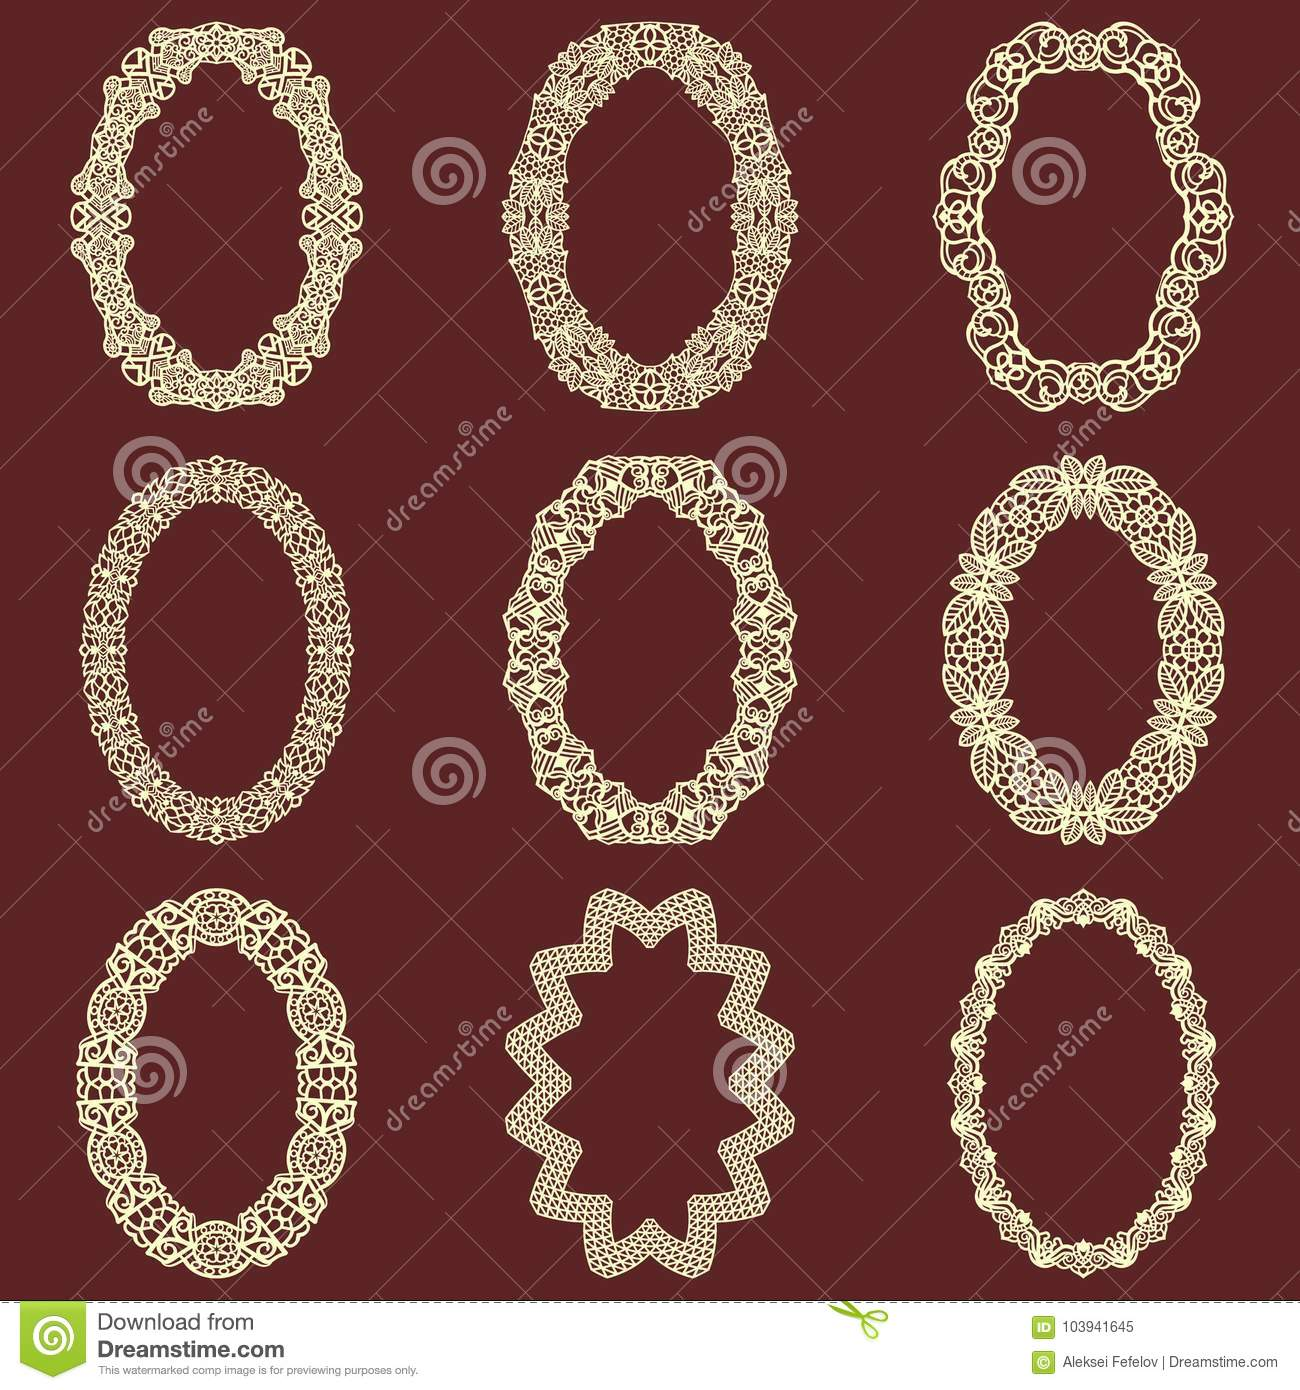 808483105e0e Set of oval vintage frames background. Vector design elements that can be  cut with a laser. A set of frames made of decorative lace borders.